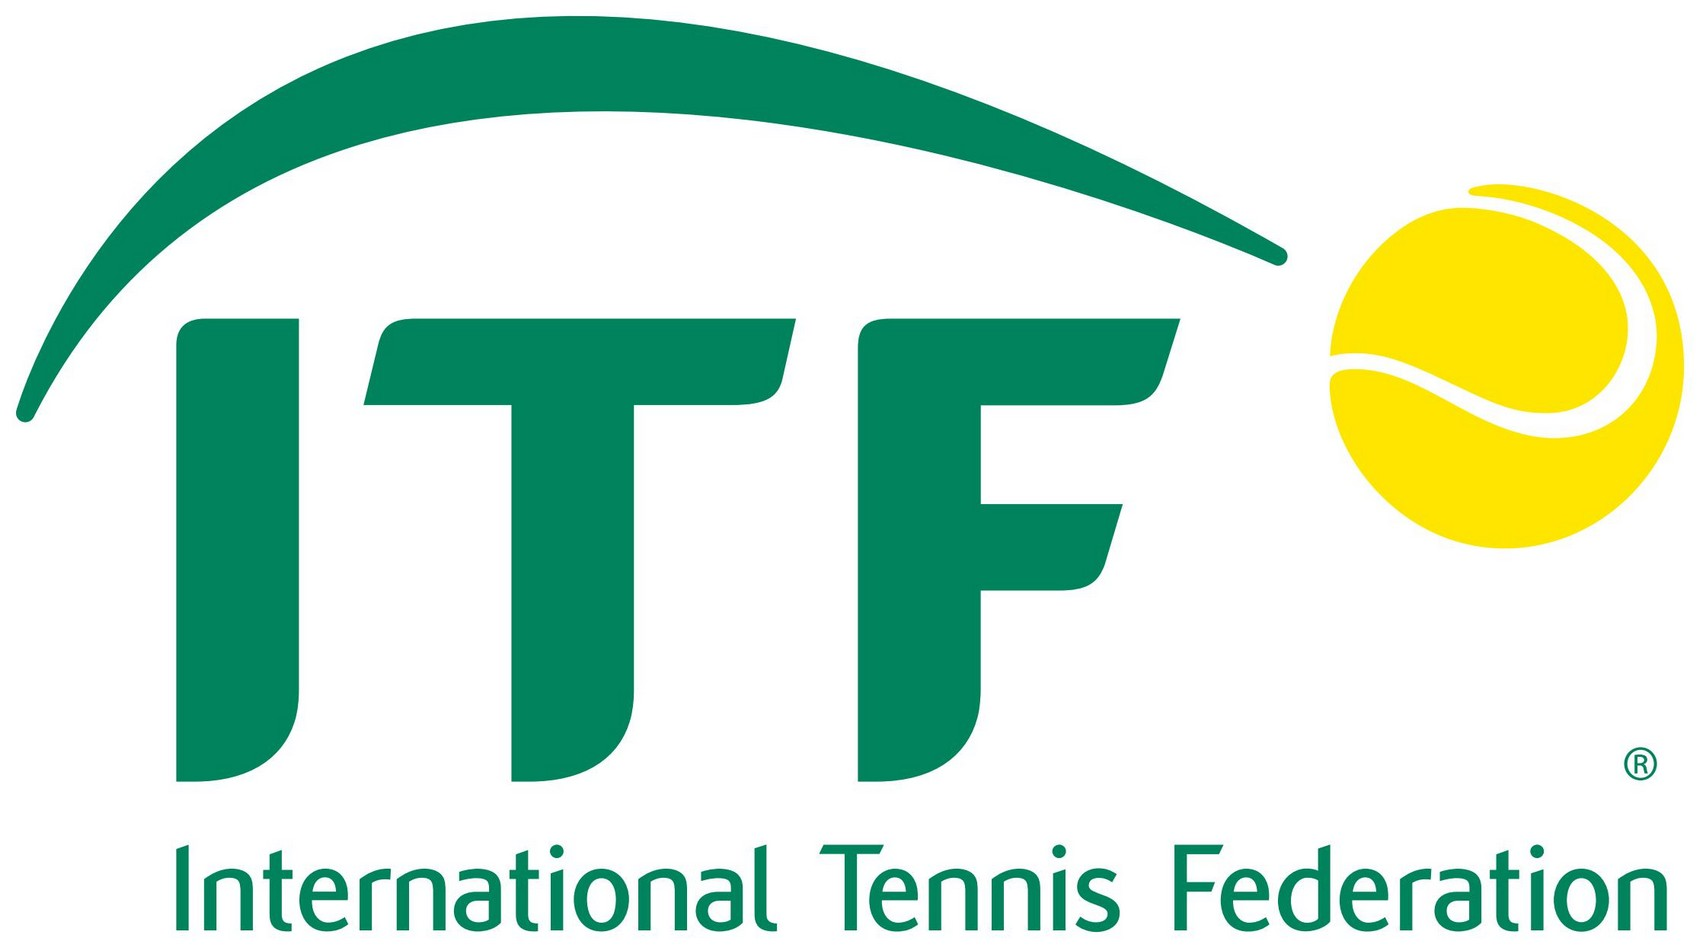 Tennisweltverband